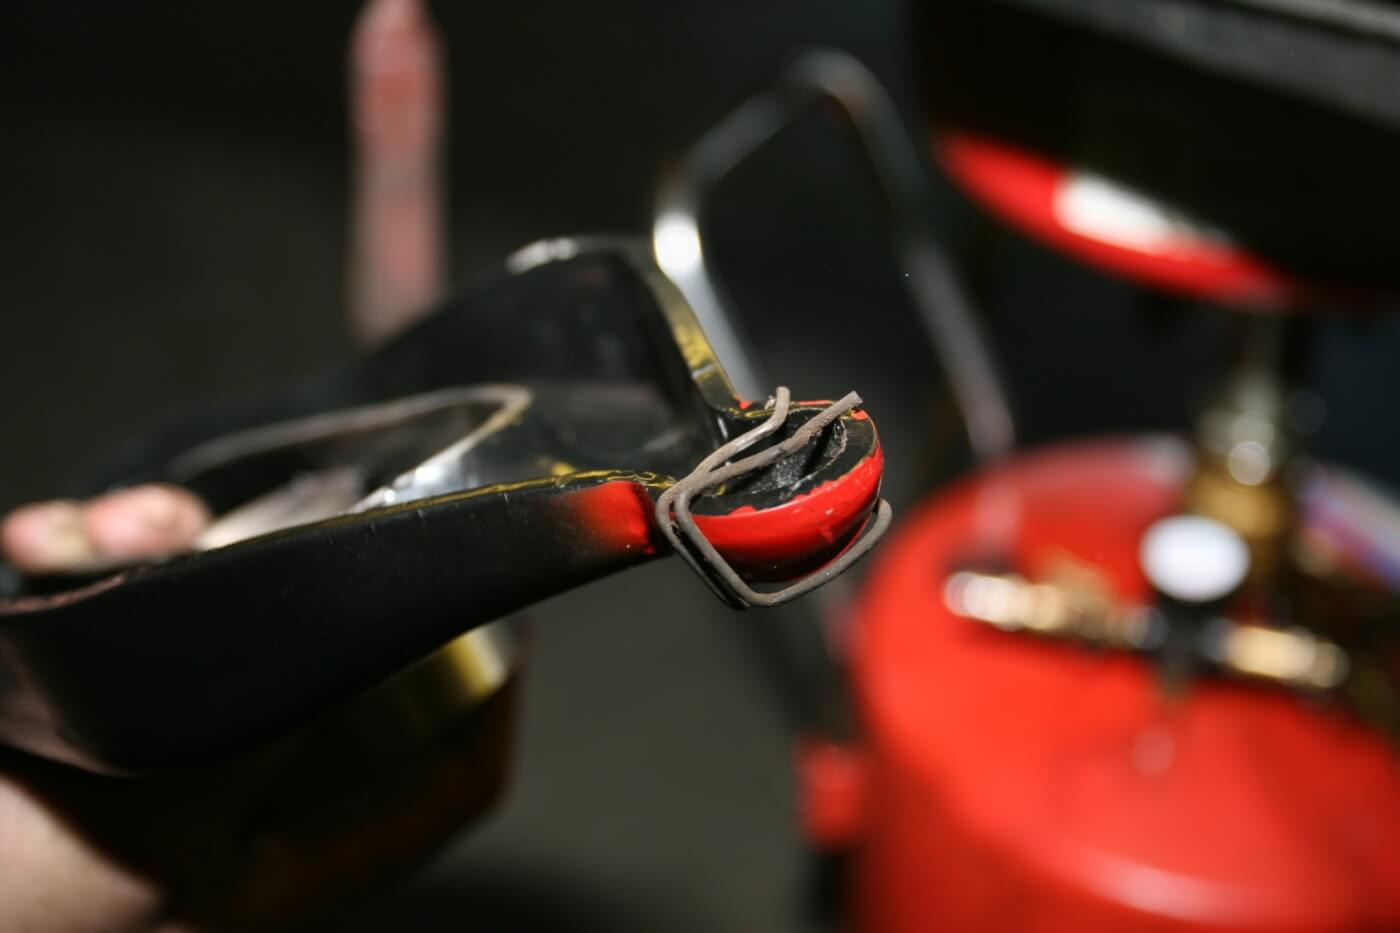 7. Anthony removed the retainer clip and reinstalled it on the painted end of the new clutch fork.